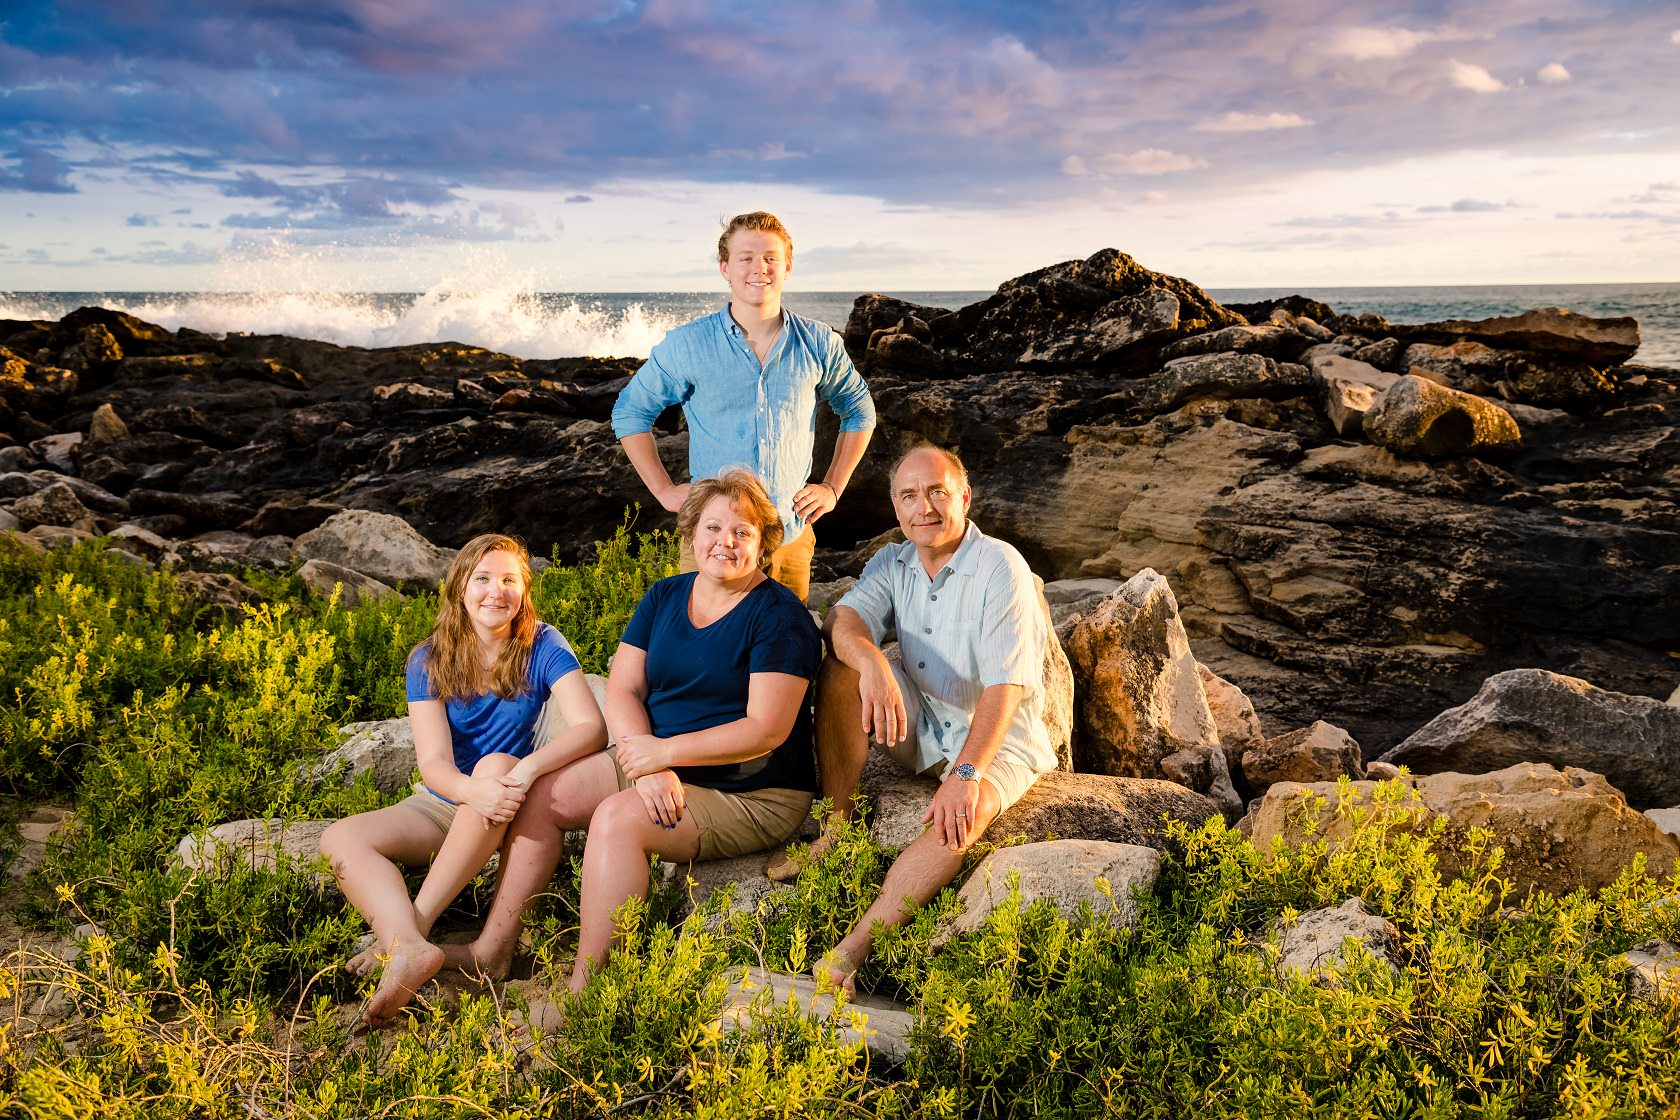 aulani family portrait photographer sunset rocky shore